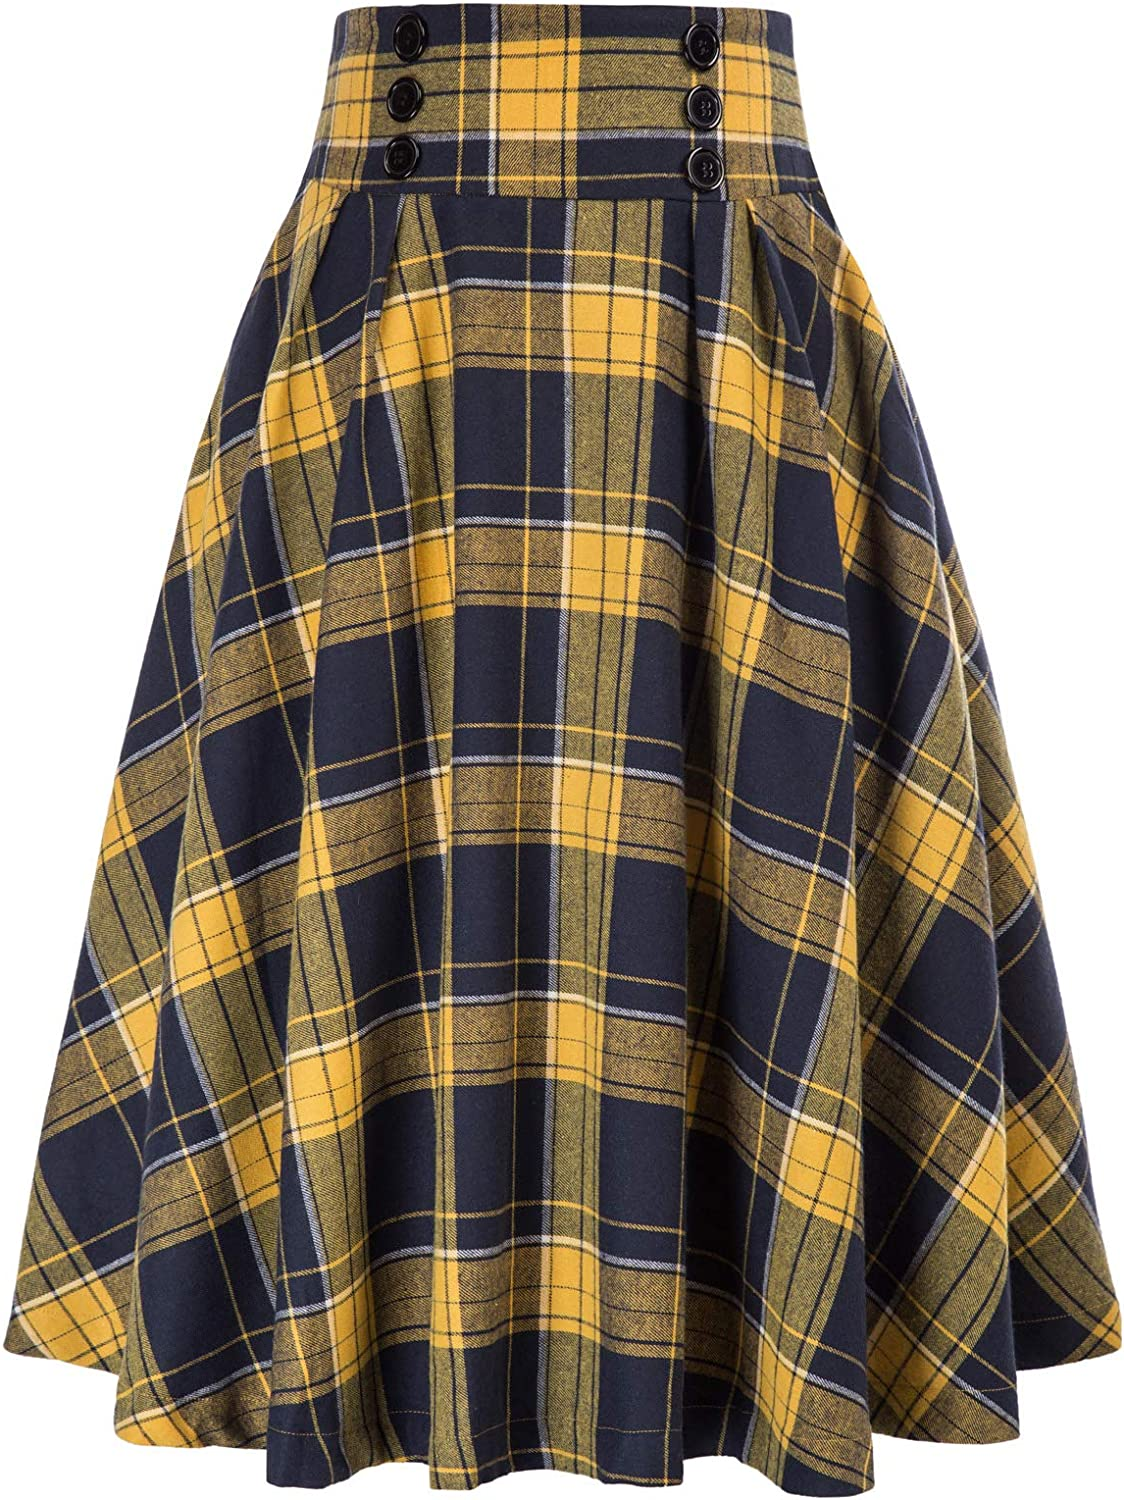 Belle Poque Women Plaid Skirt Vintage High Waist Pleated Skirt with Pockets BPA020